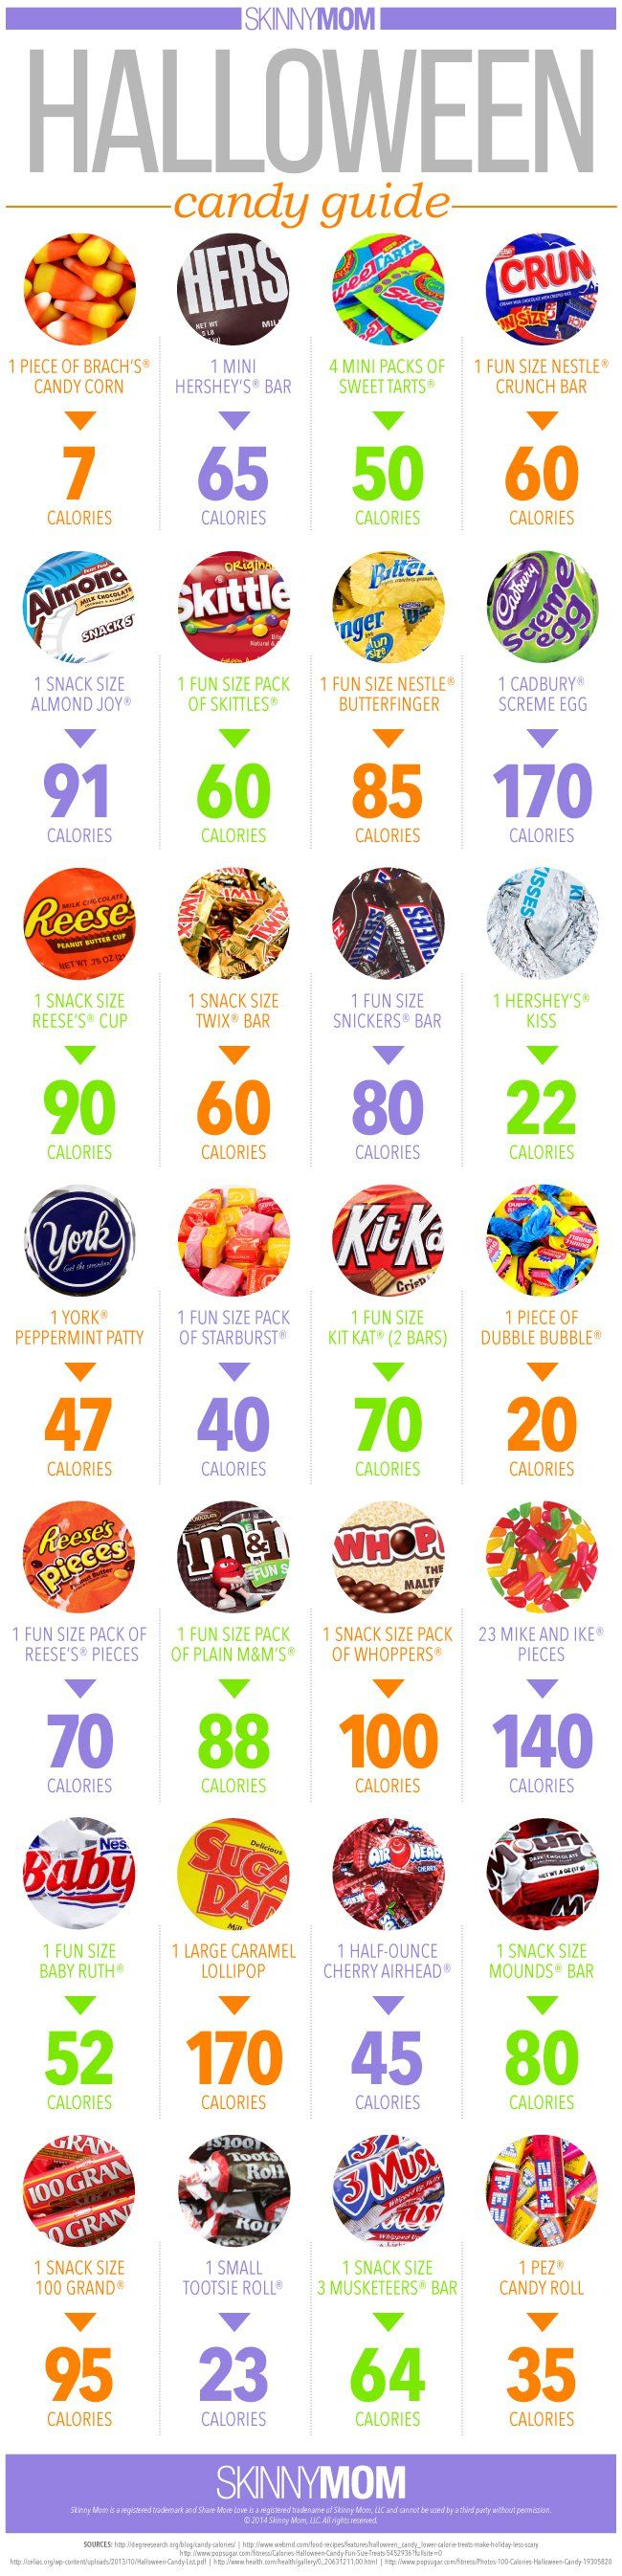 The Official Skinny Mom Guide to Halloween Candy | Skinny Mom | Where Moms Get the Skinny on Healthy Living